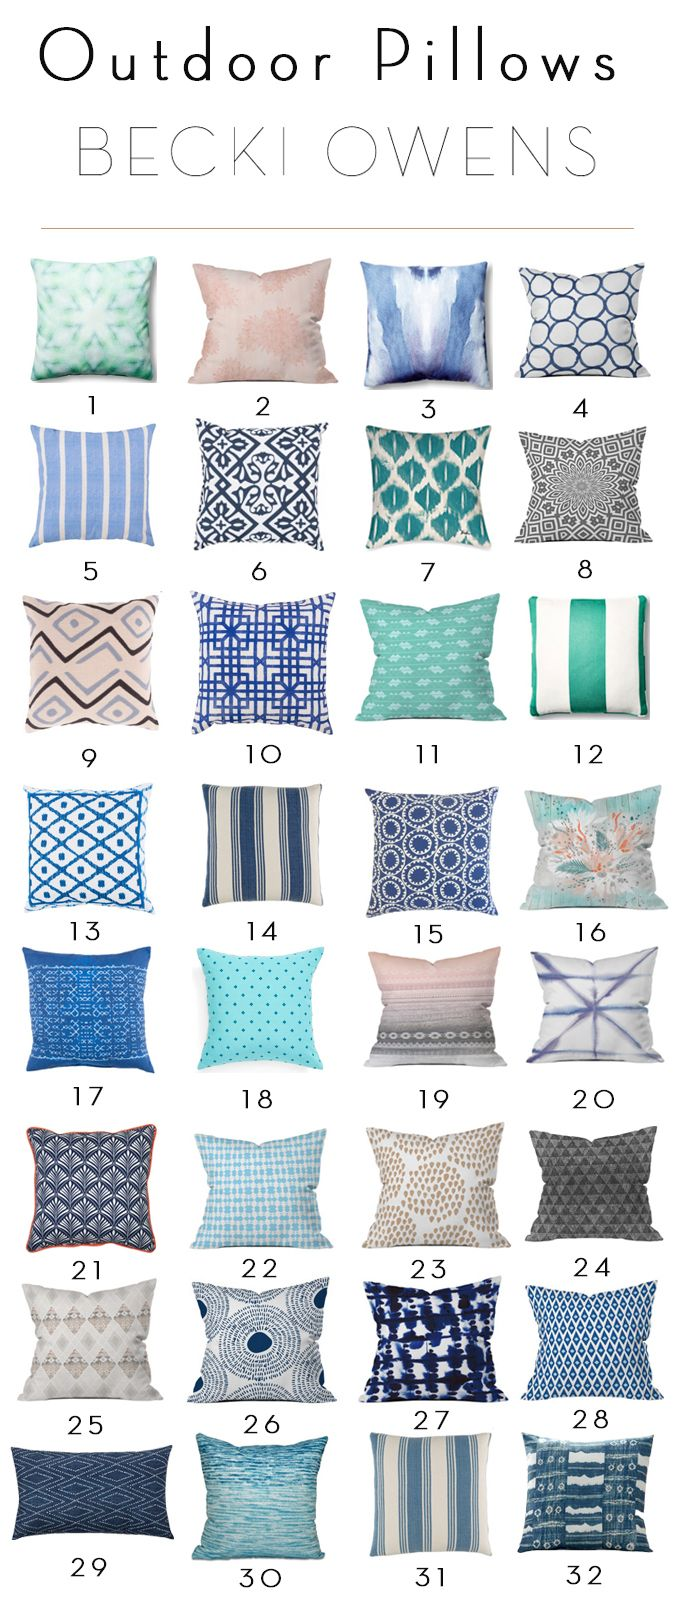 It's the time of year to spruce up your outdoor spaces with some fun updates. Today, I've found 32 outdoor pillows that are pretty and affordable. Check out these 32 outdoor pillows for under $100.